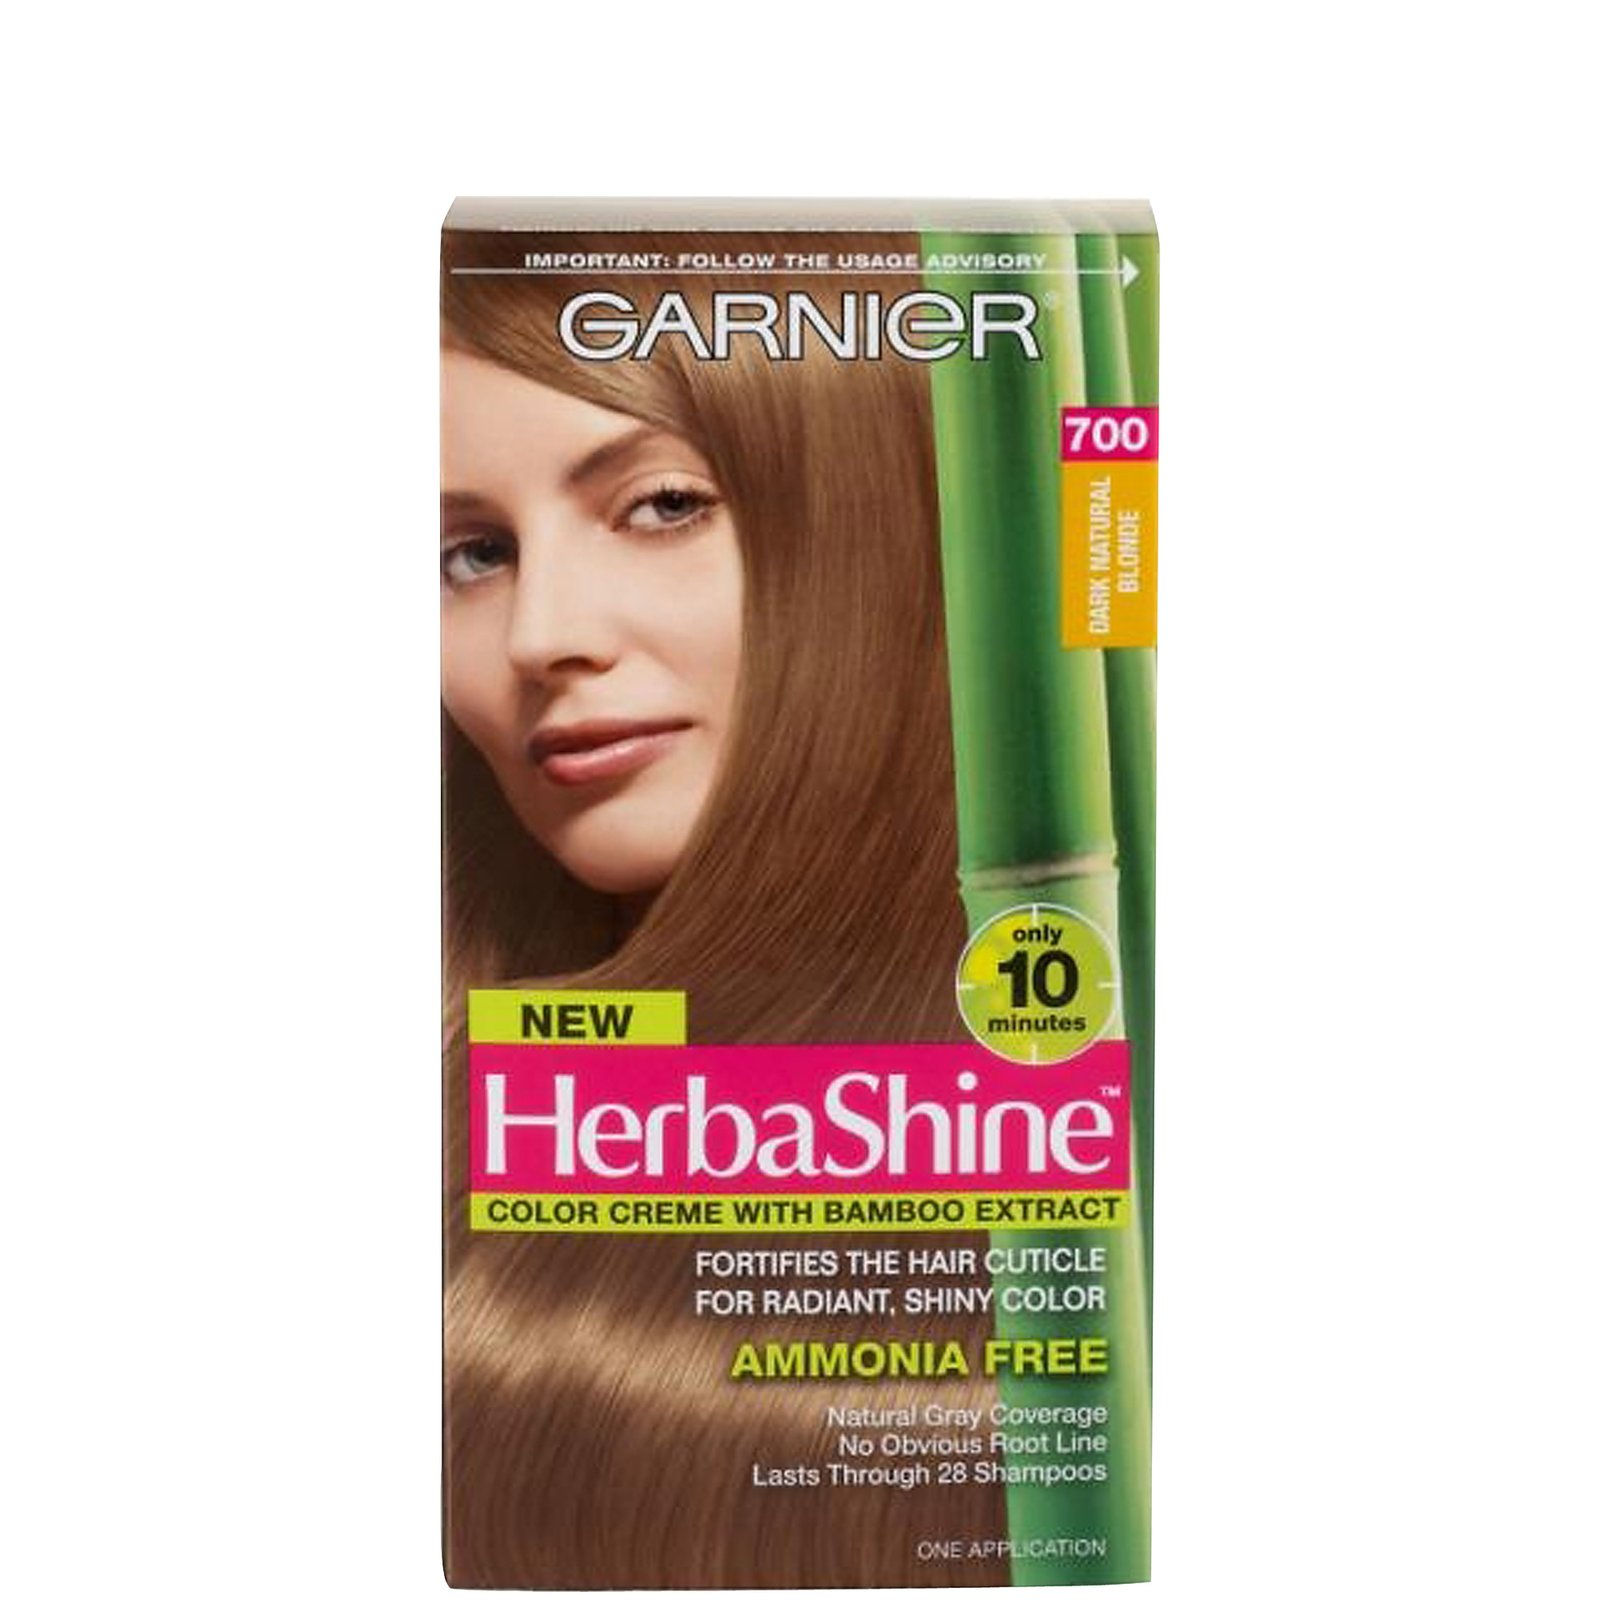 Cvs Garnier Hair Color Deal 49 Box My Crazy Savings